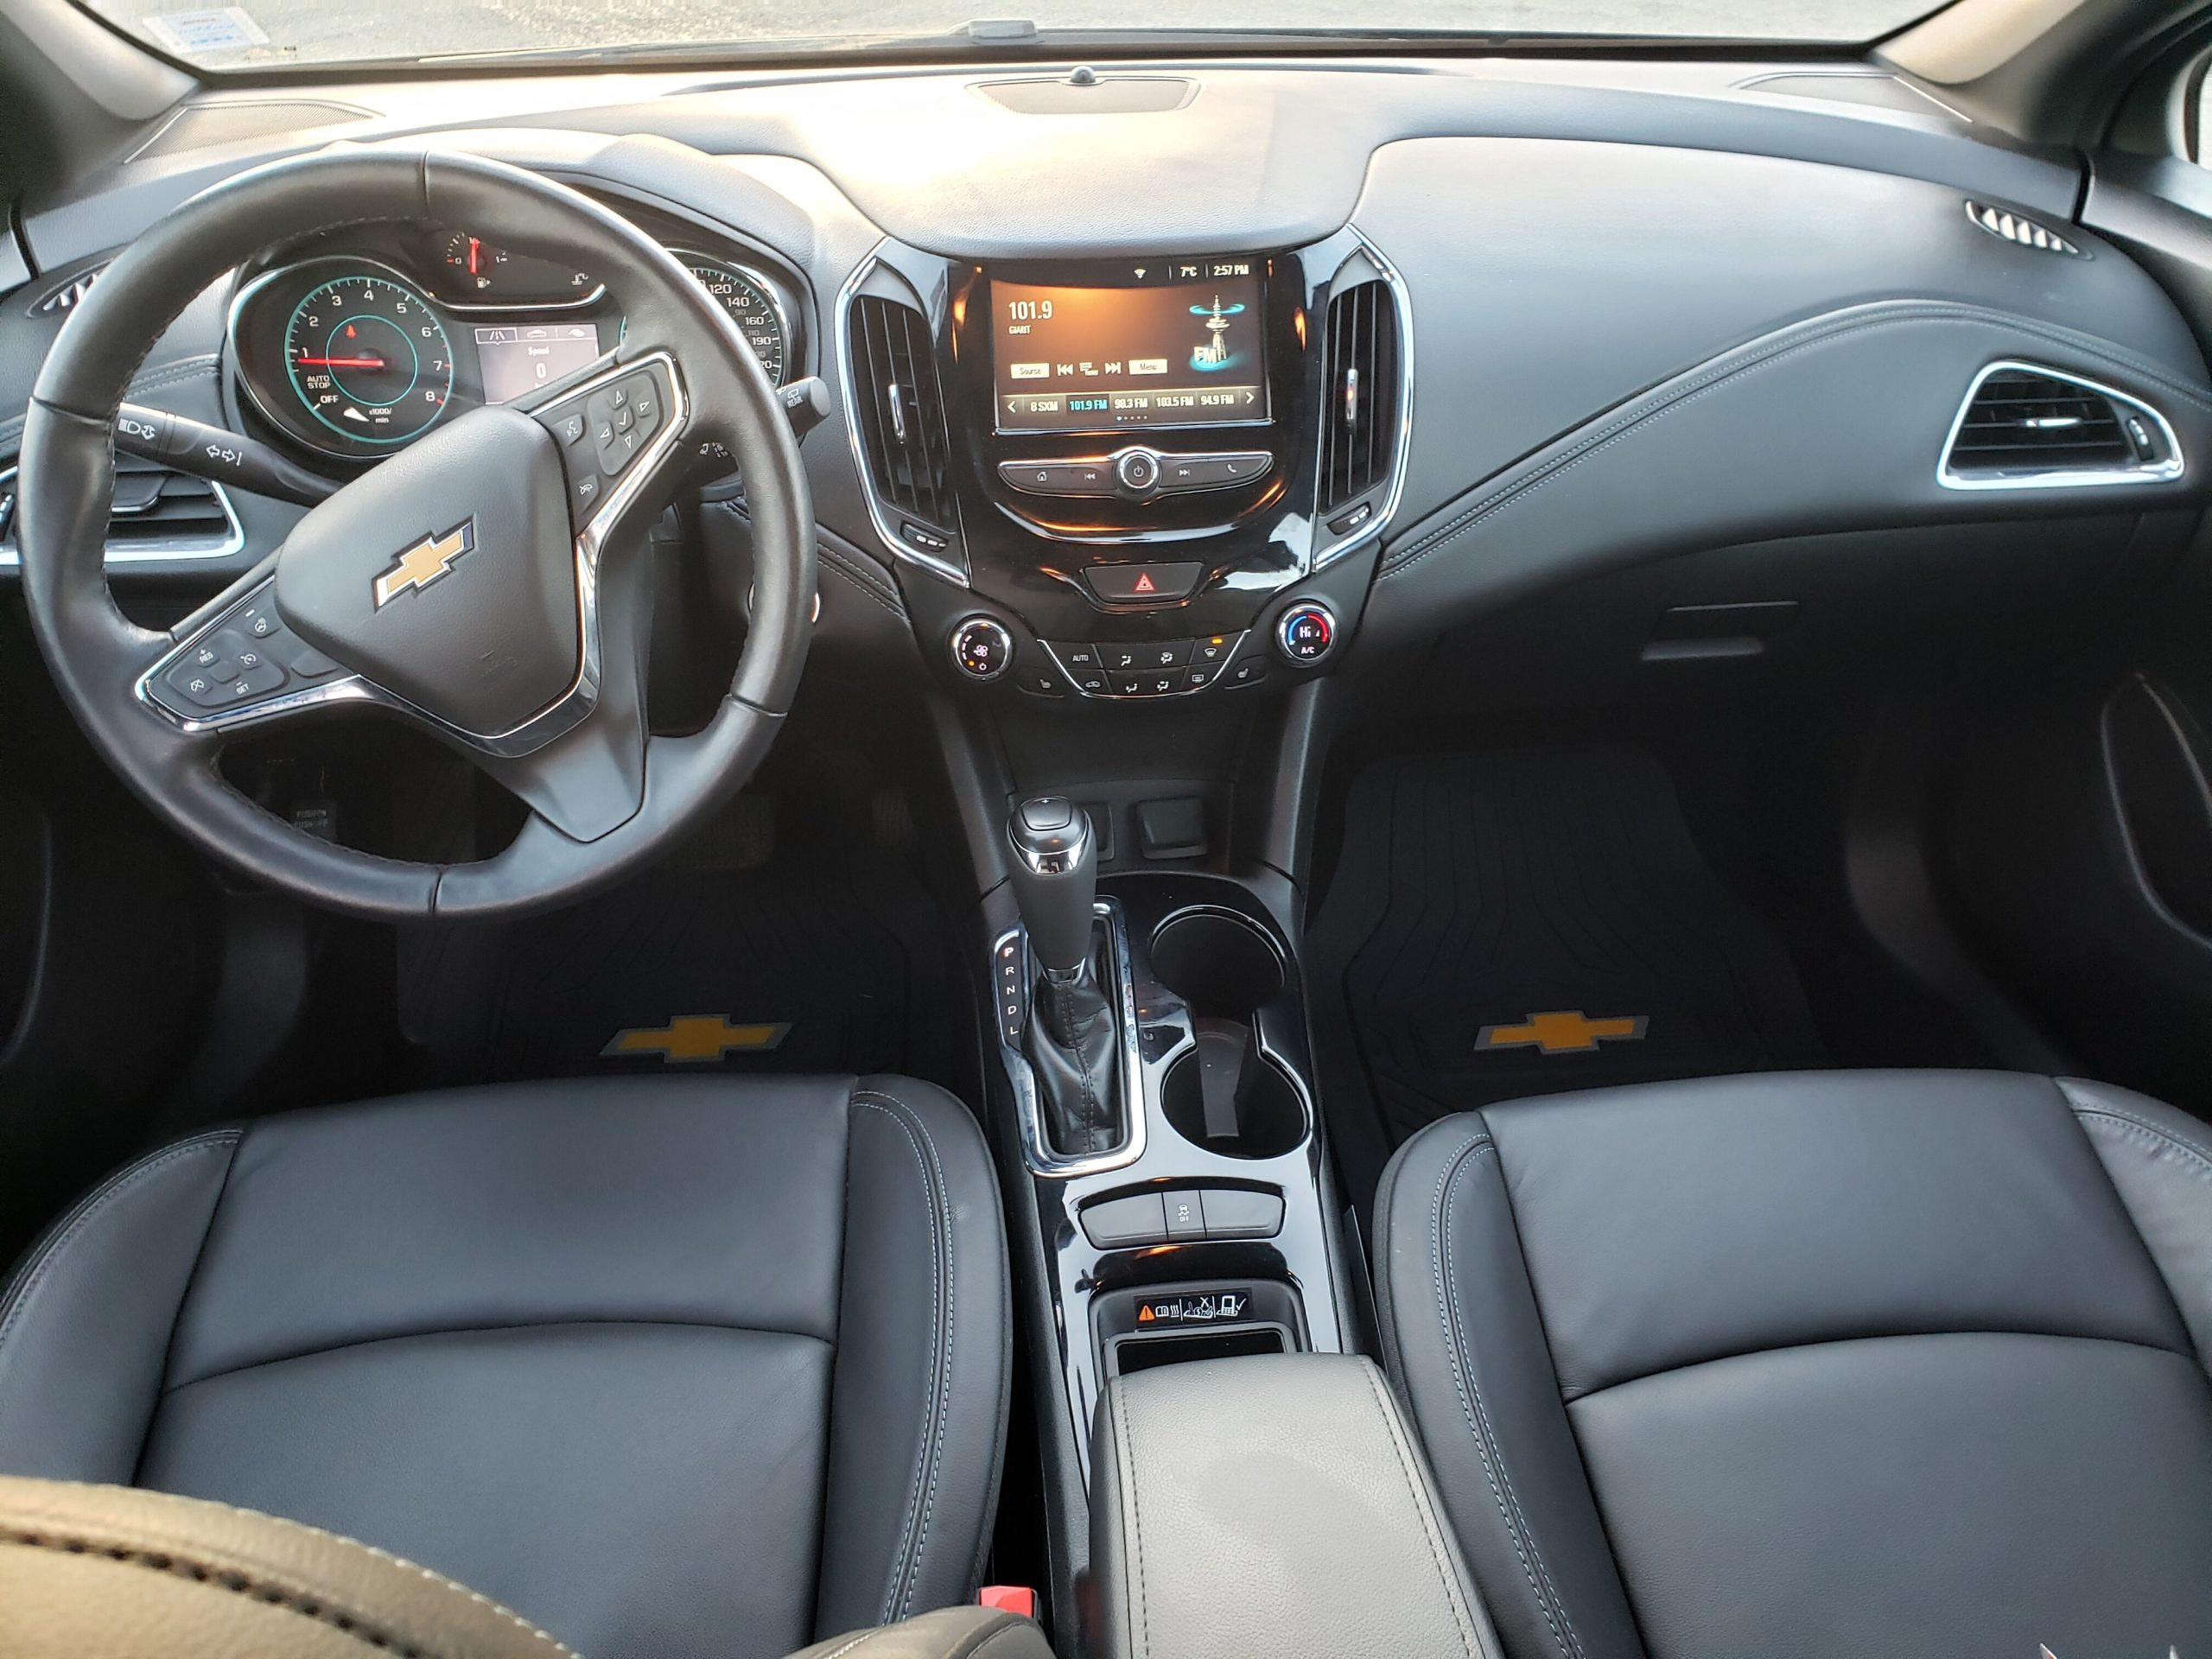 Used 2018 Chevrolet Cruze For Sale At Colbourne Chrysler 2021 Chevy Cruze Seat Covers, Safety Rating, Transmission